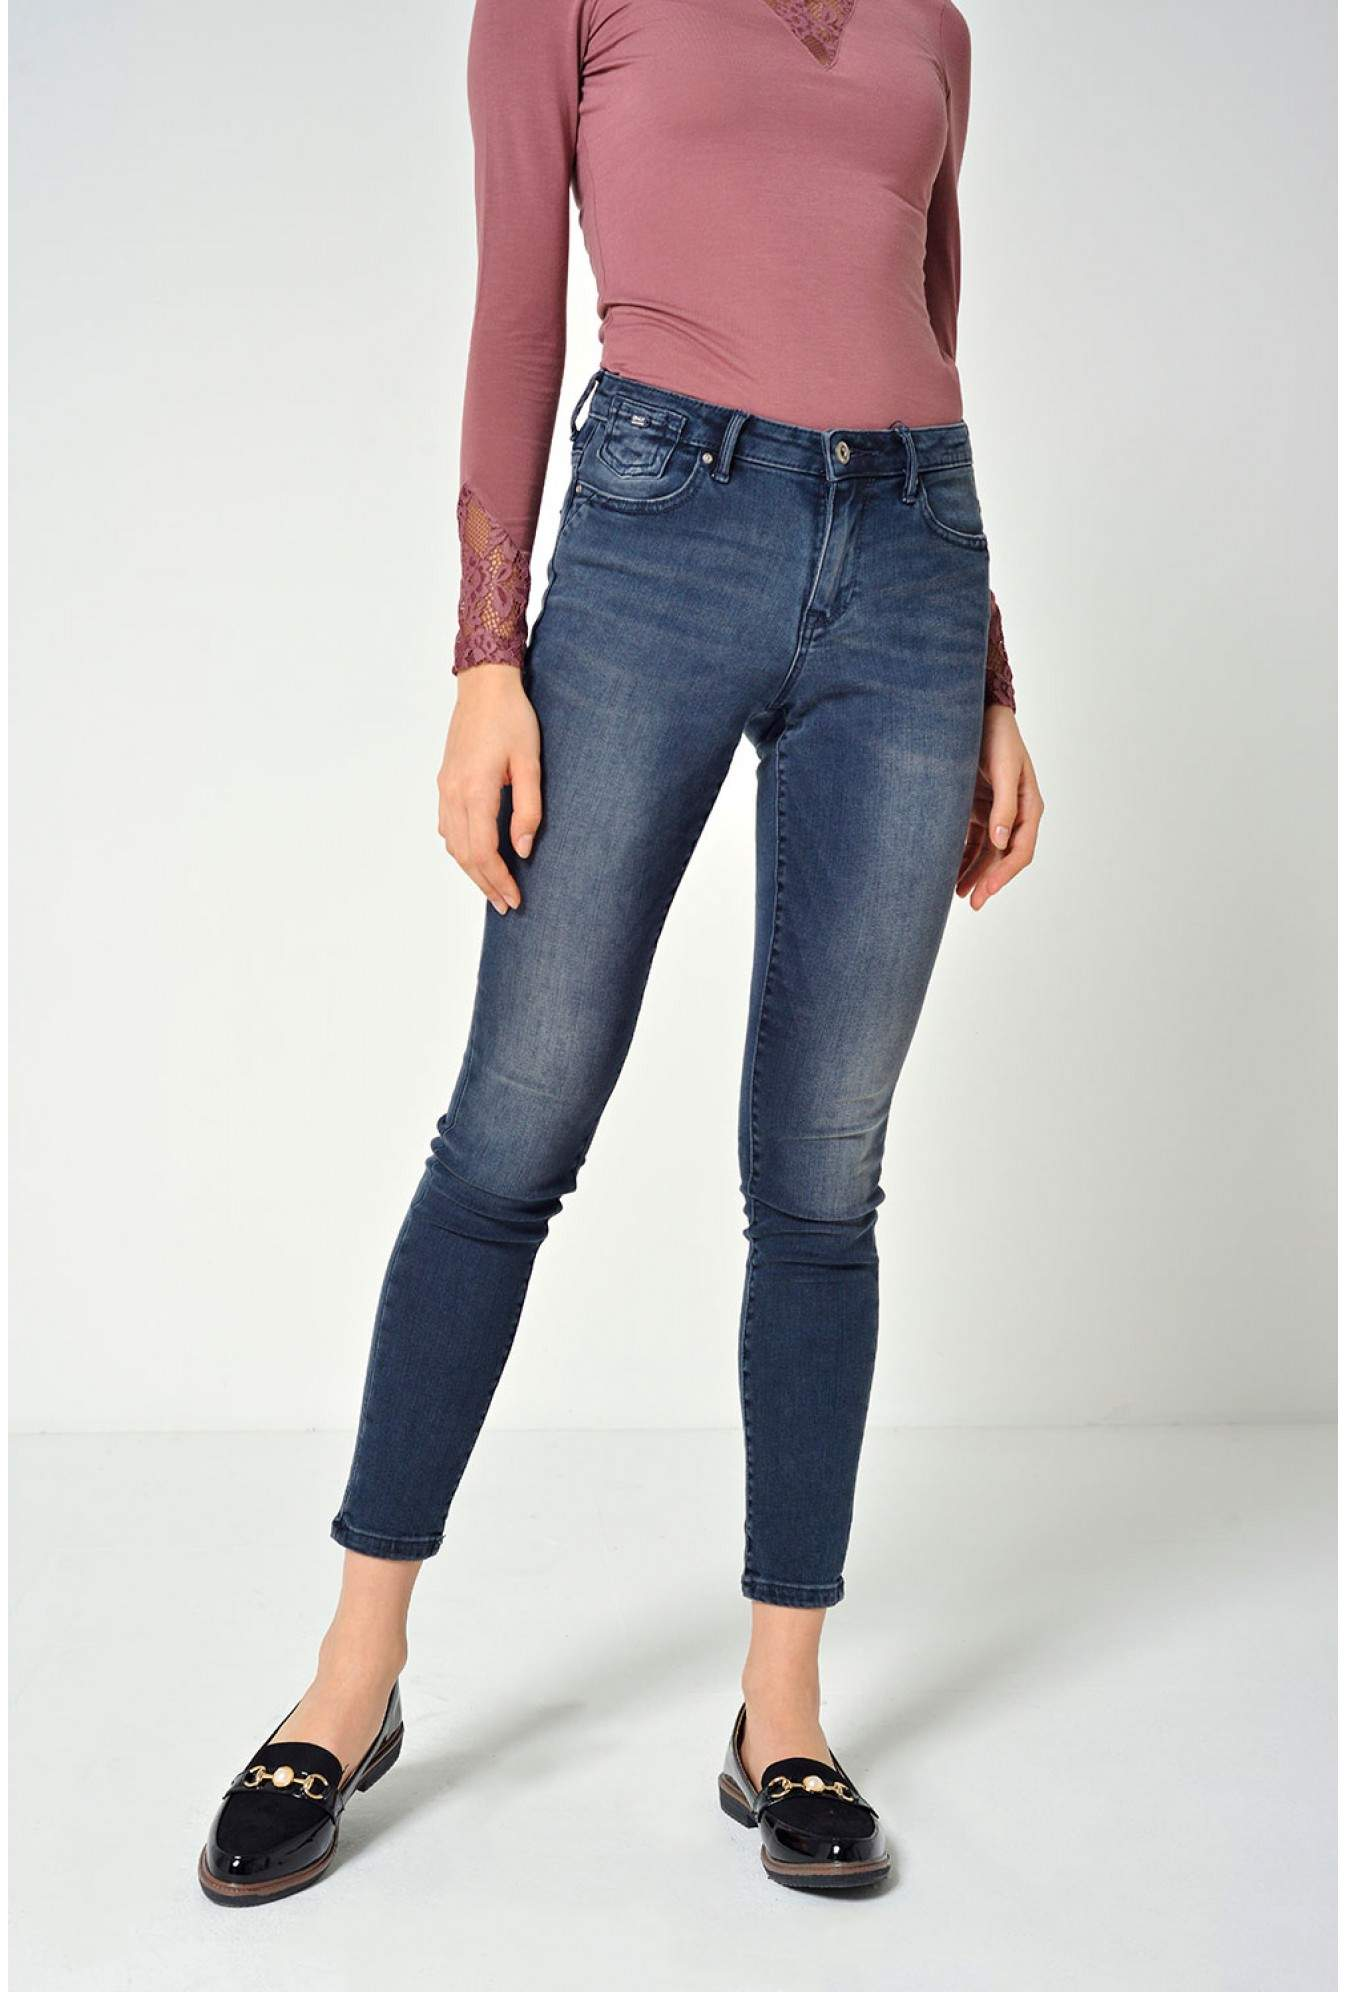 Intact share tenacious  Only Carmen Short Skinny Jeans in Dark Blue | iCLOTHING